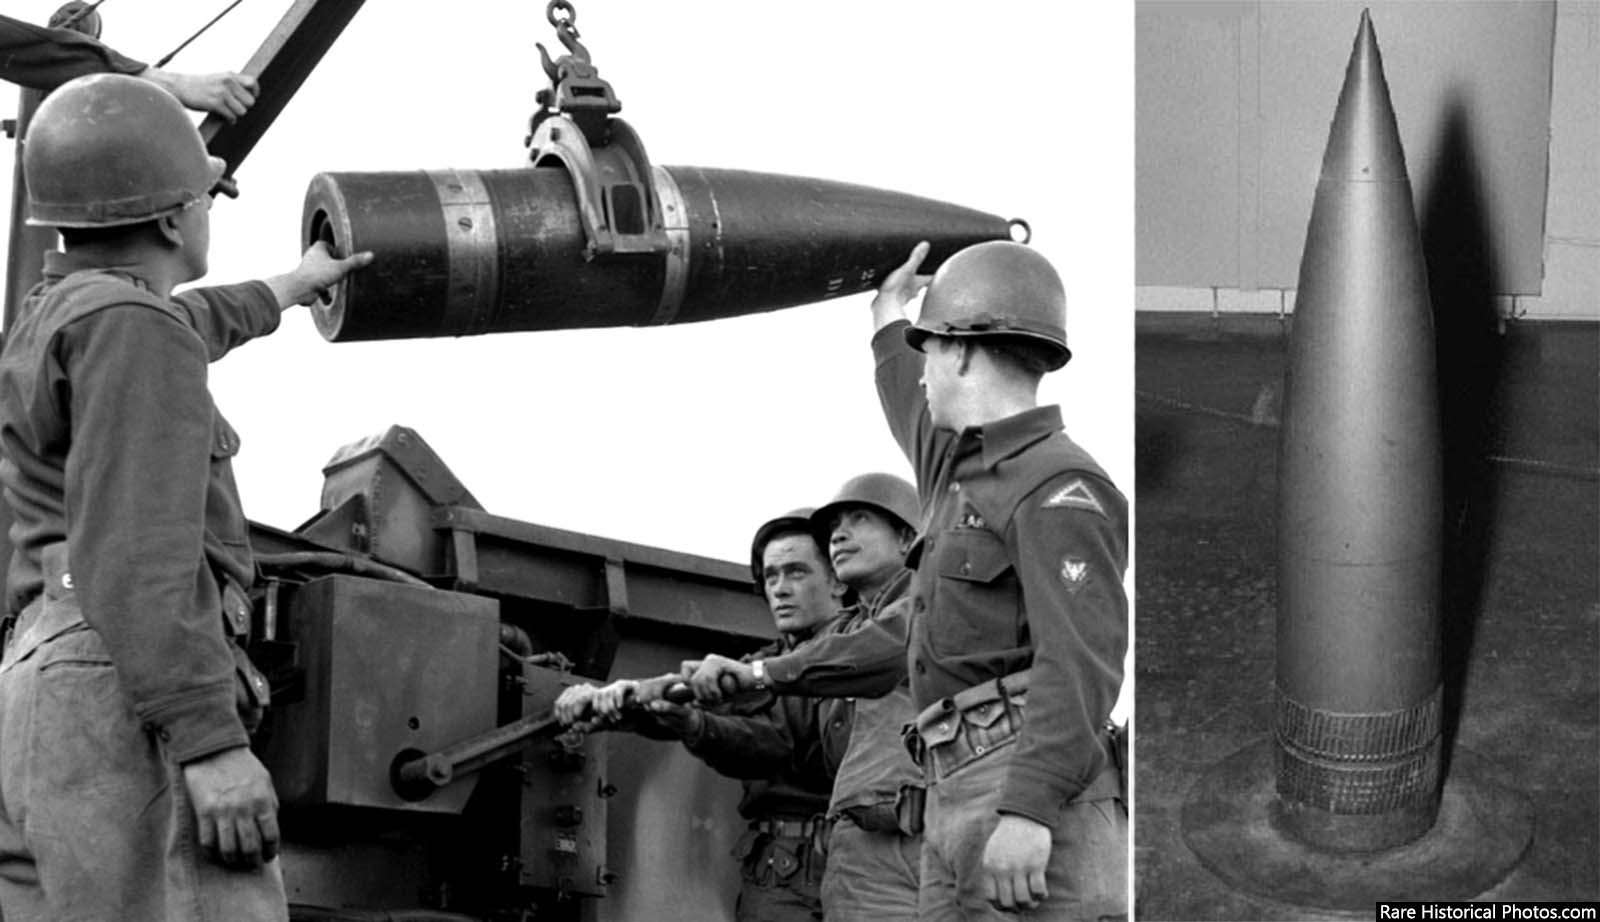 The round (the W9 warhead) was 11-inches wide, 4.5 ft long (13.84 m) and weighed 803-pounds (365 kg).